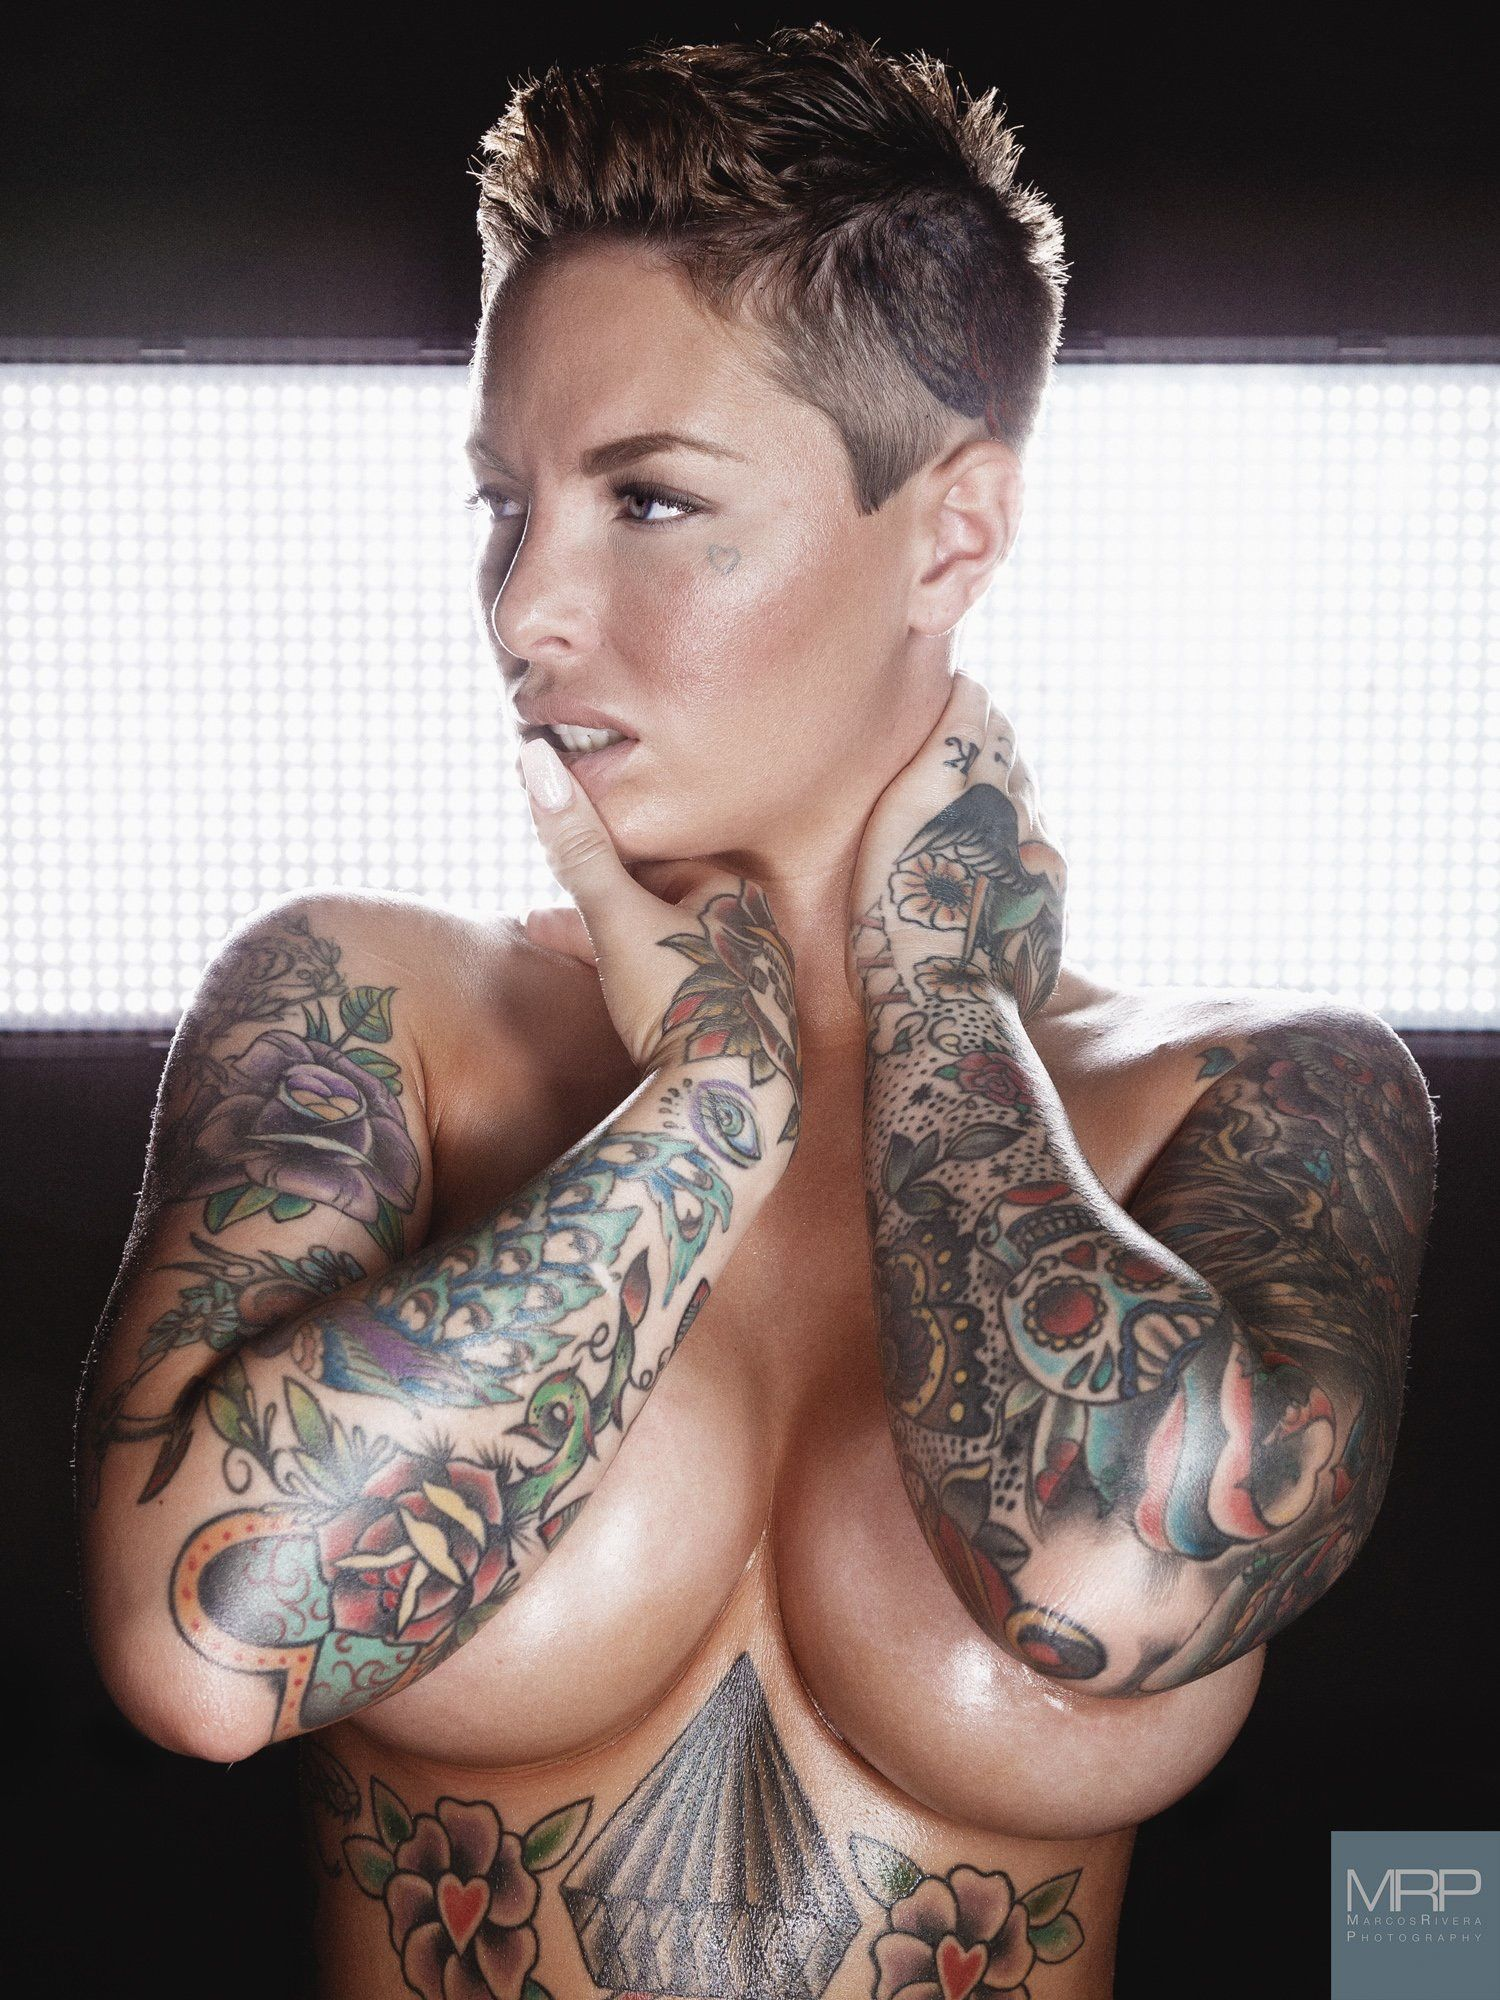 Agree, Christy mack tattoo necessary words